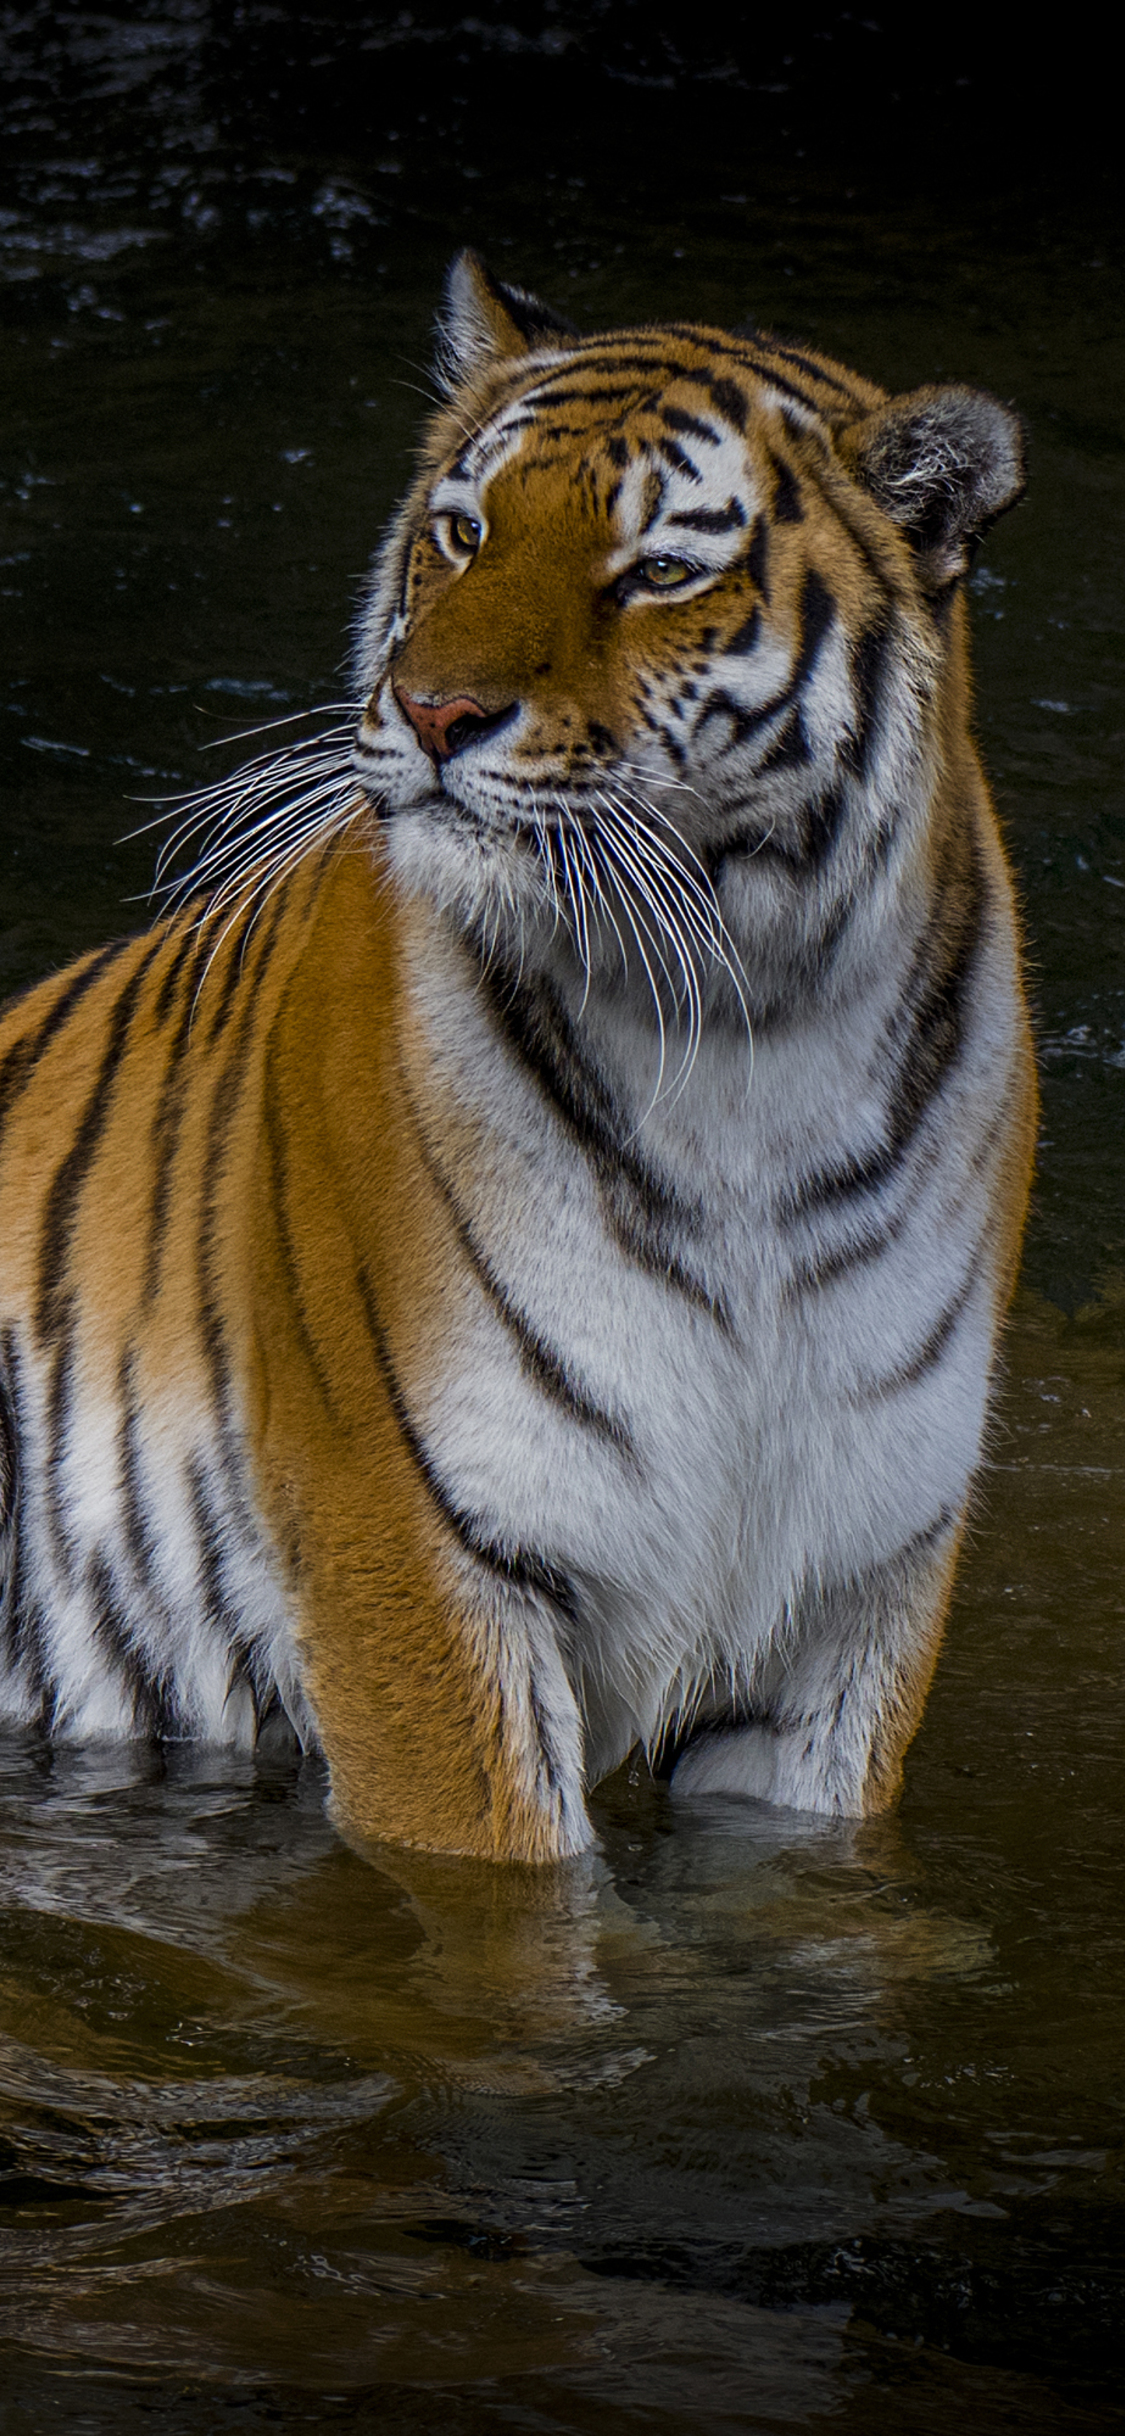 Tiger Iphone Wallpaper Posted By Christopher Anderson